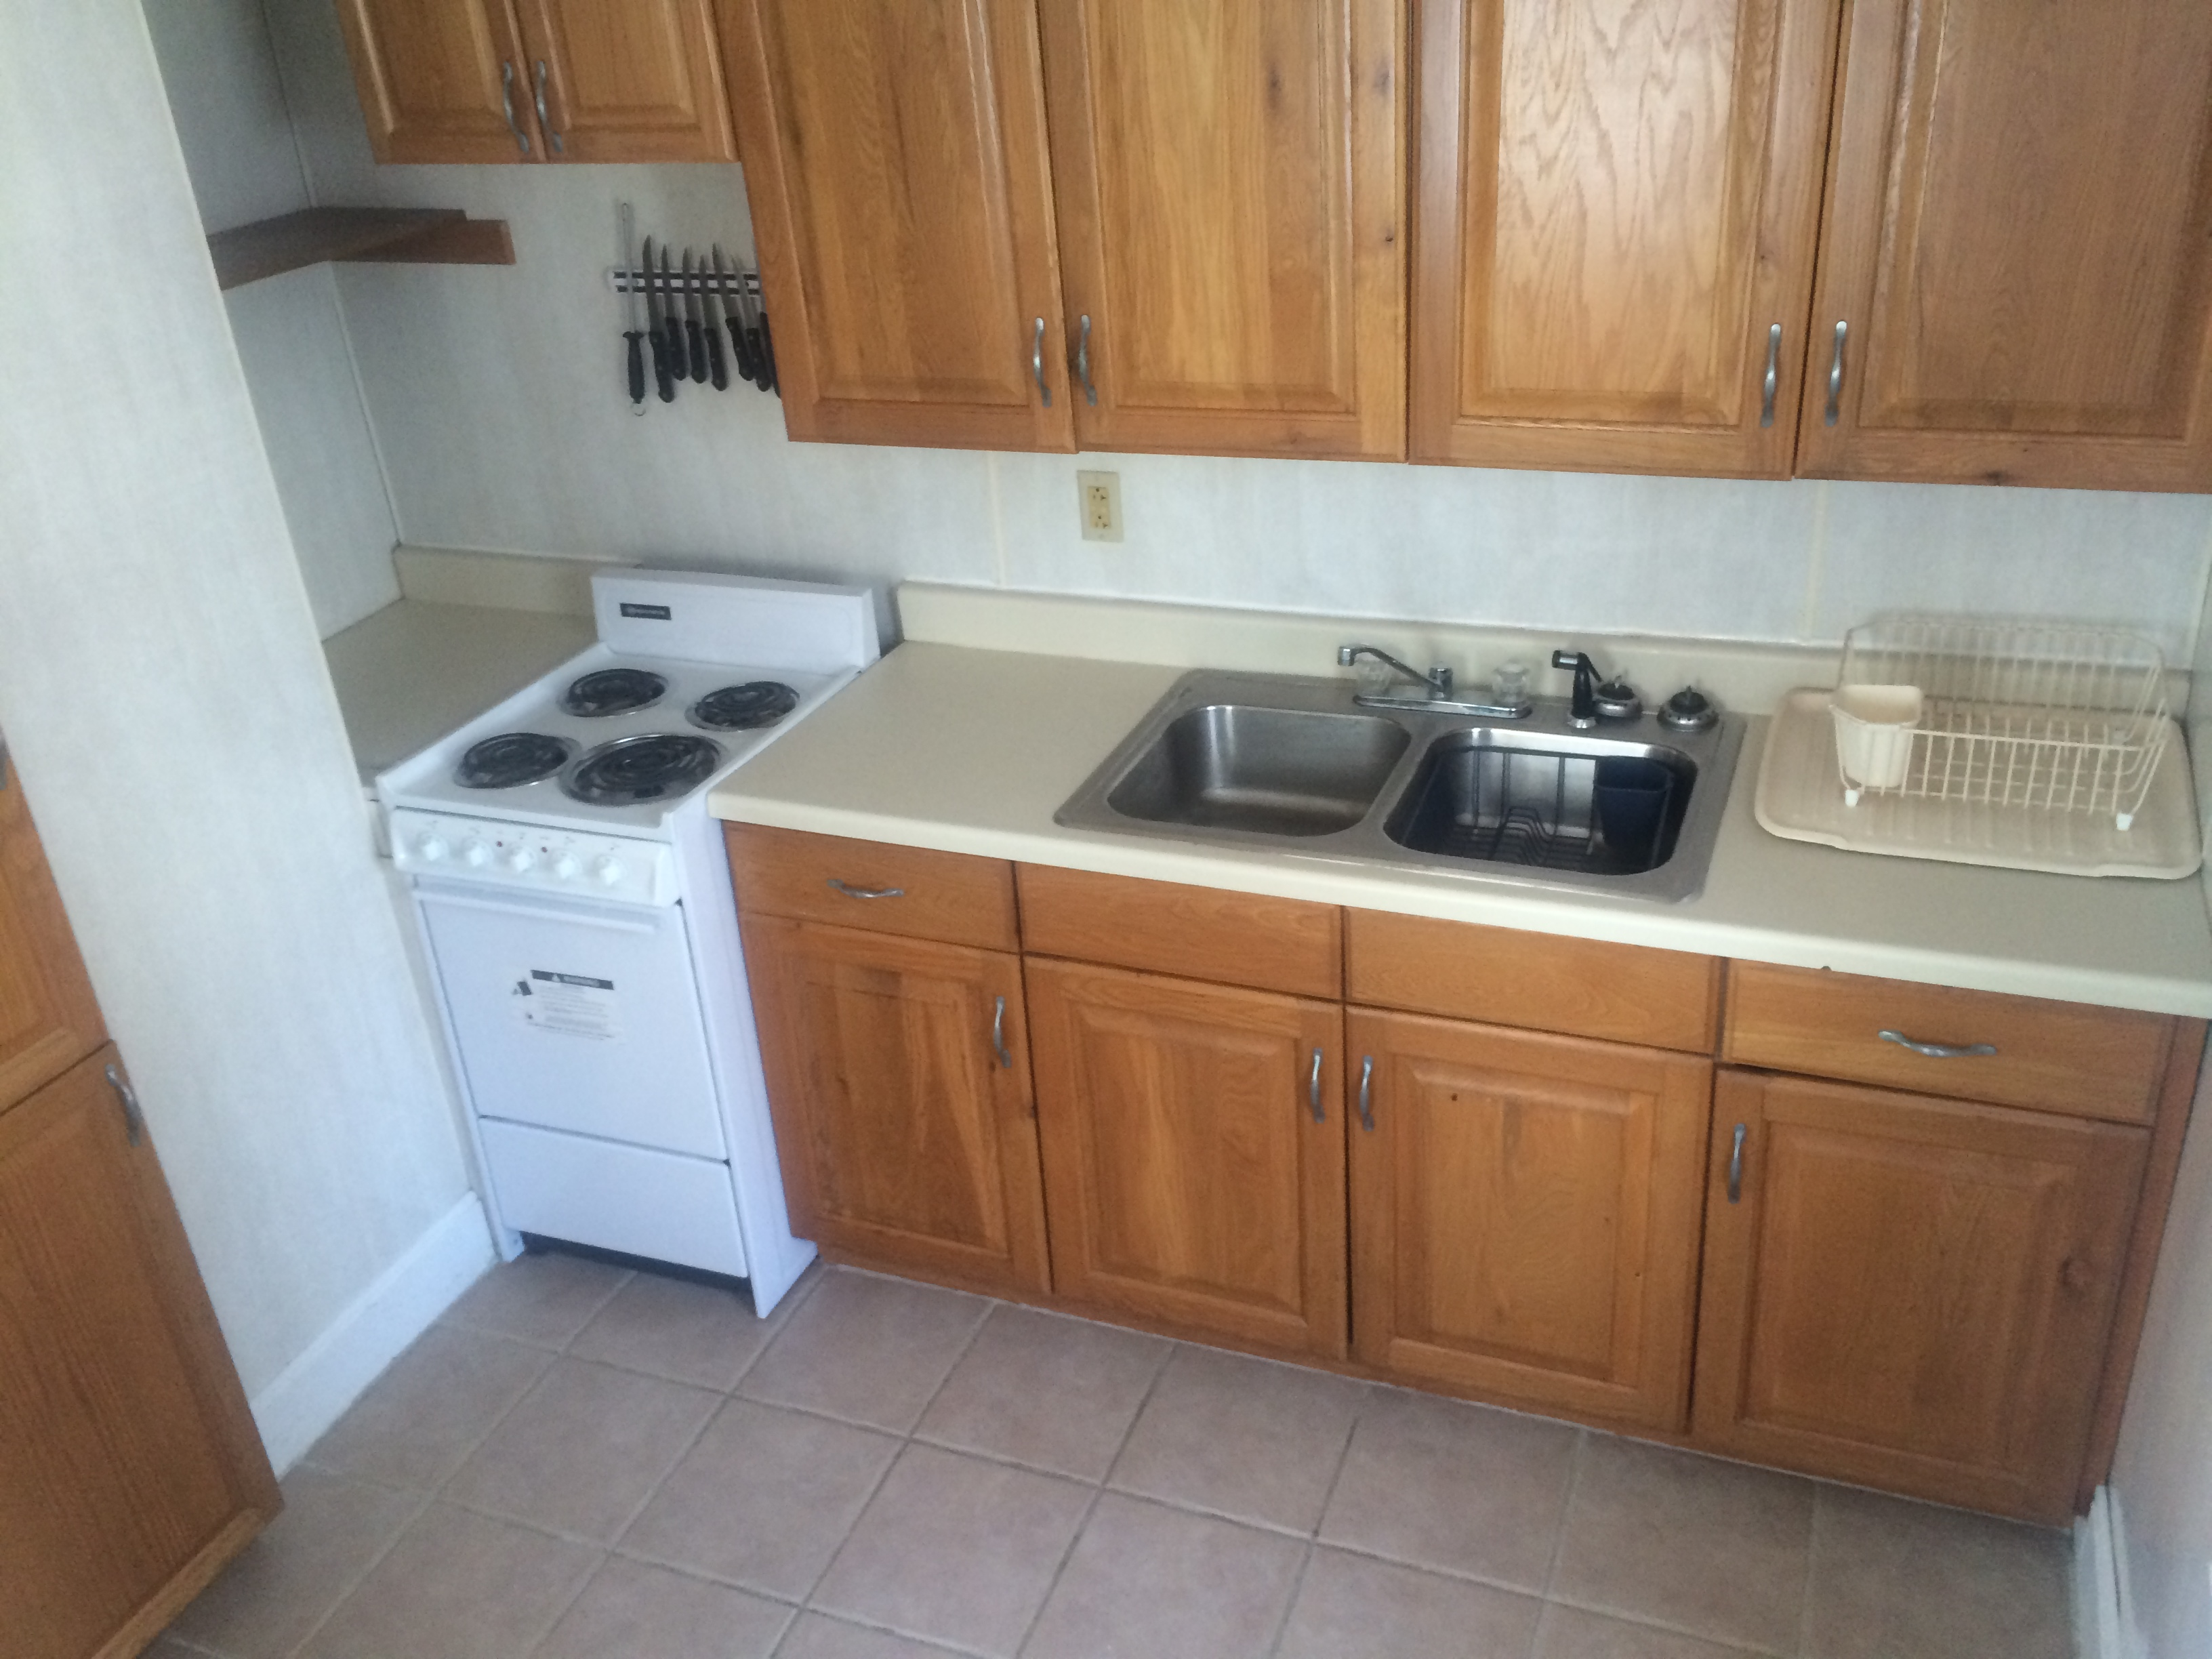 kitchen with stove, sink and cabinets